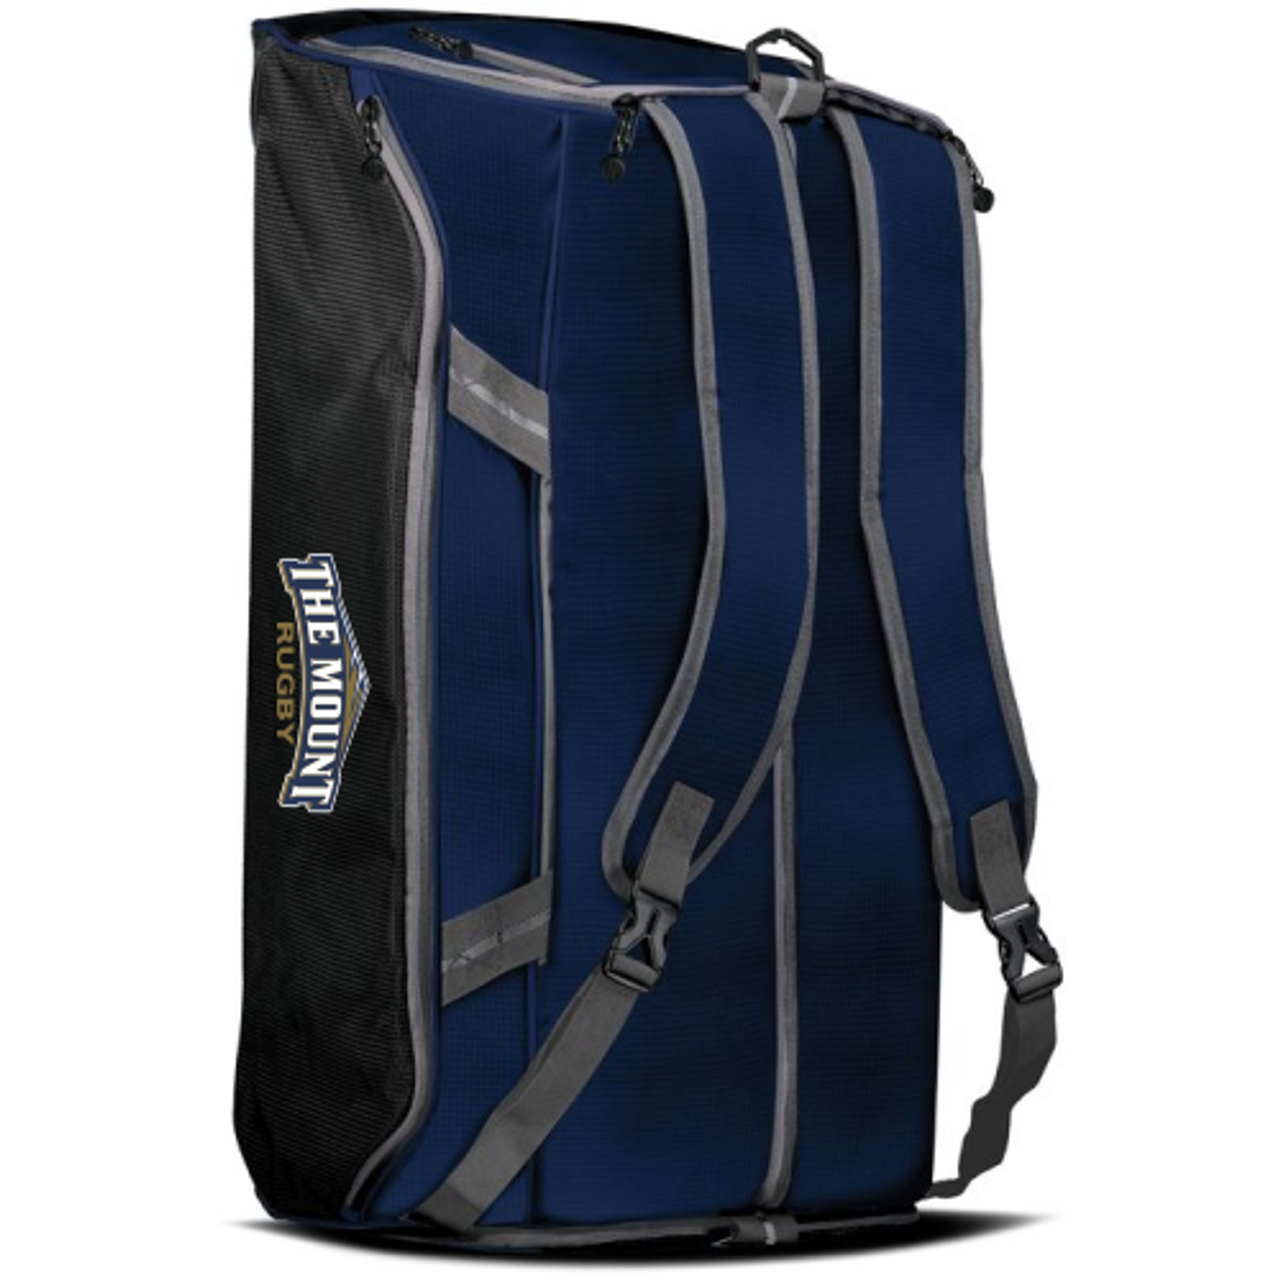 MSM Rugby Backpack Duffel